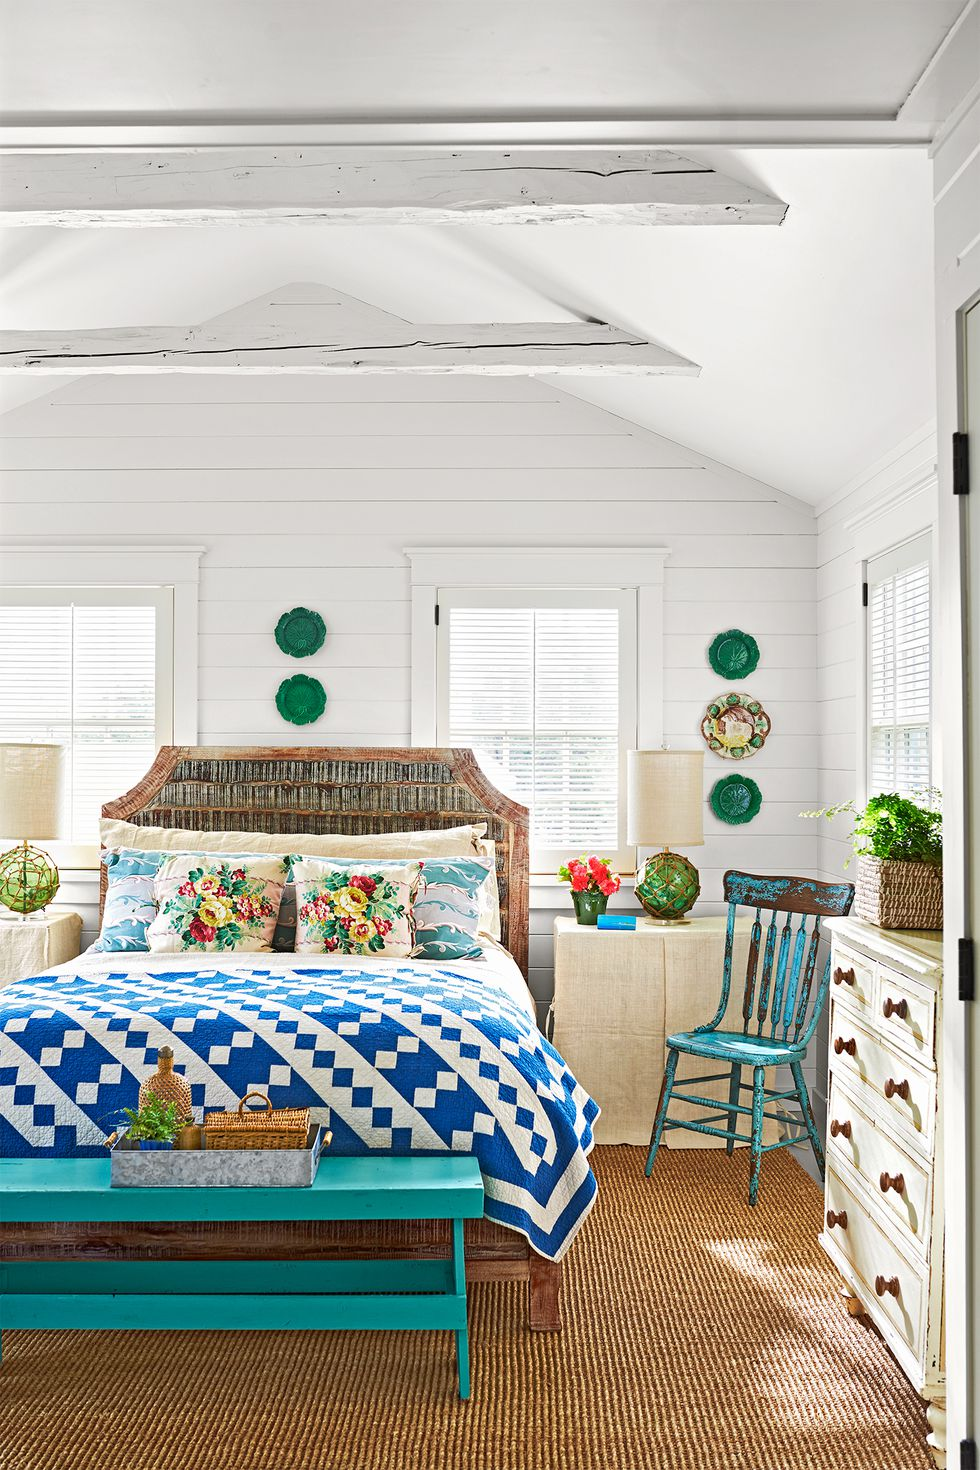 Beach Pretty House Tours-A Funky Quaint Beach Cottage on Marthas Vineyard 7.jpg